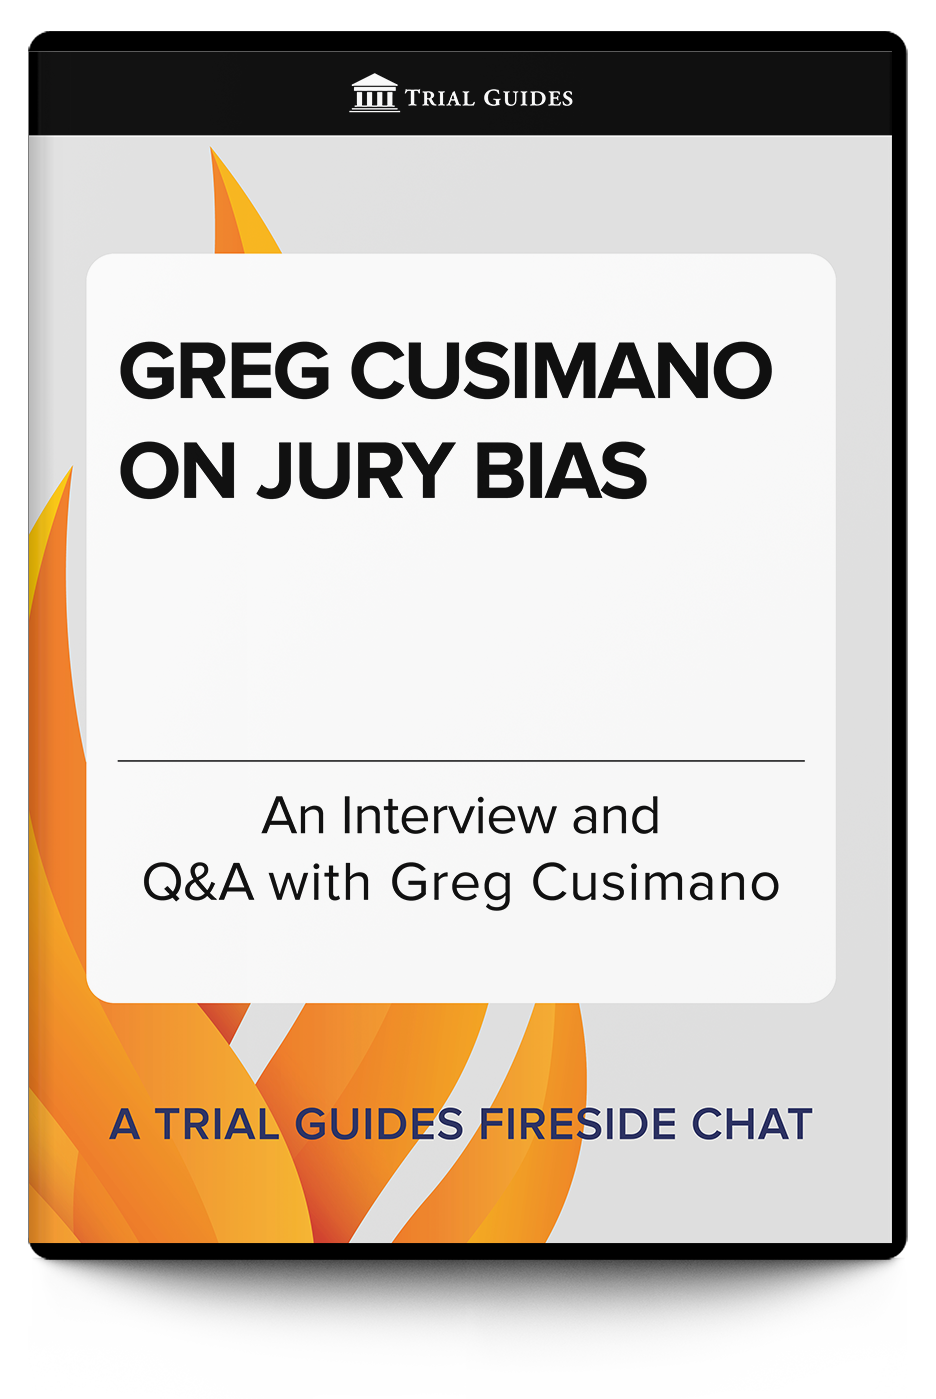 Greg Cusimano on Jury Bias